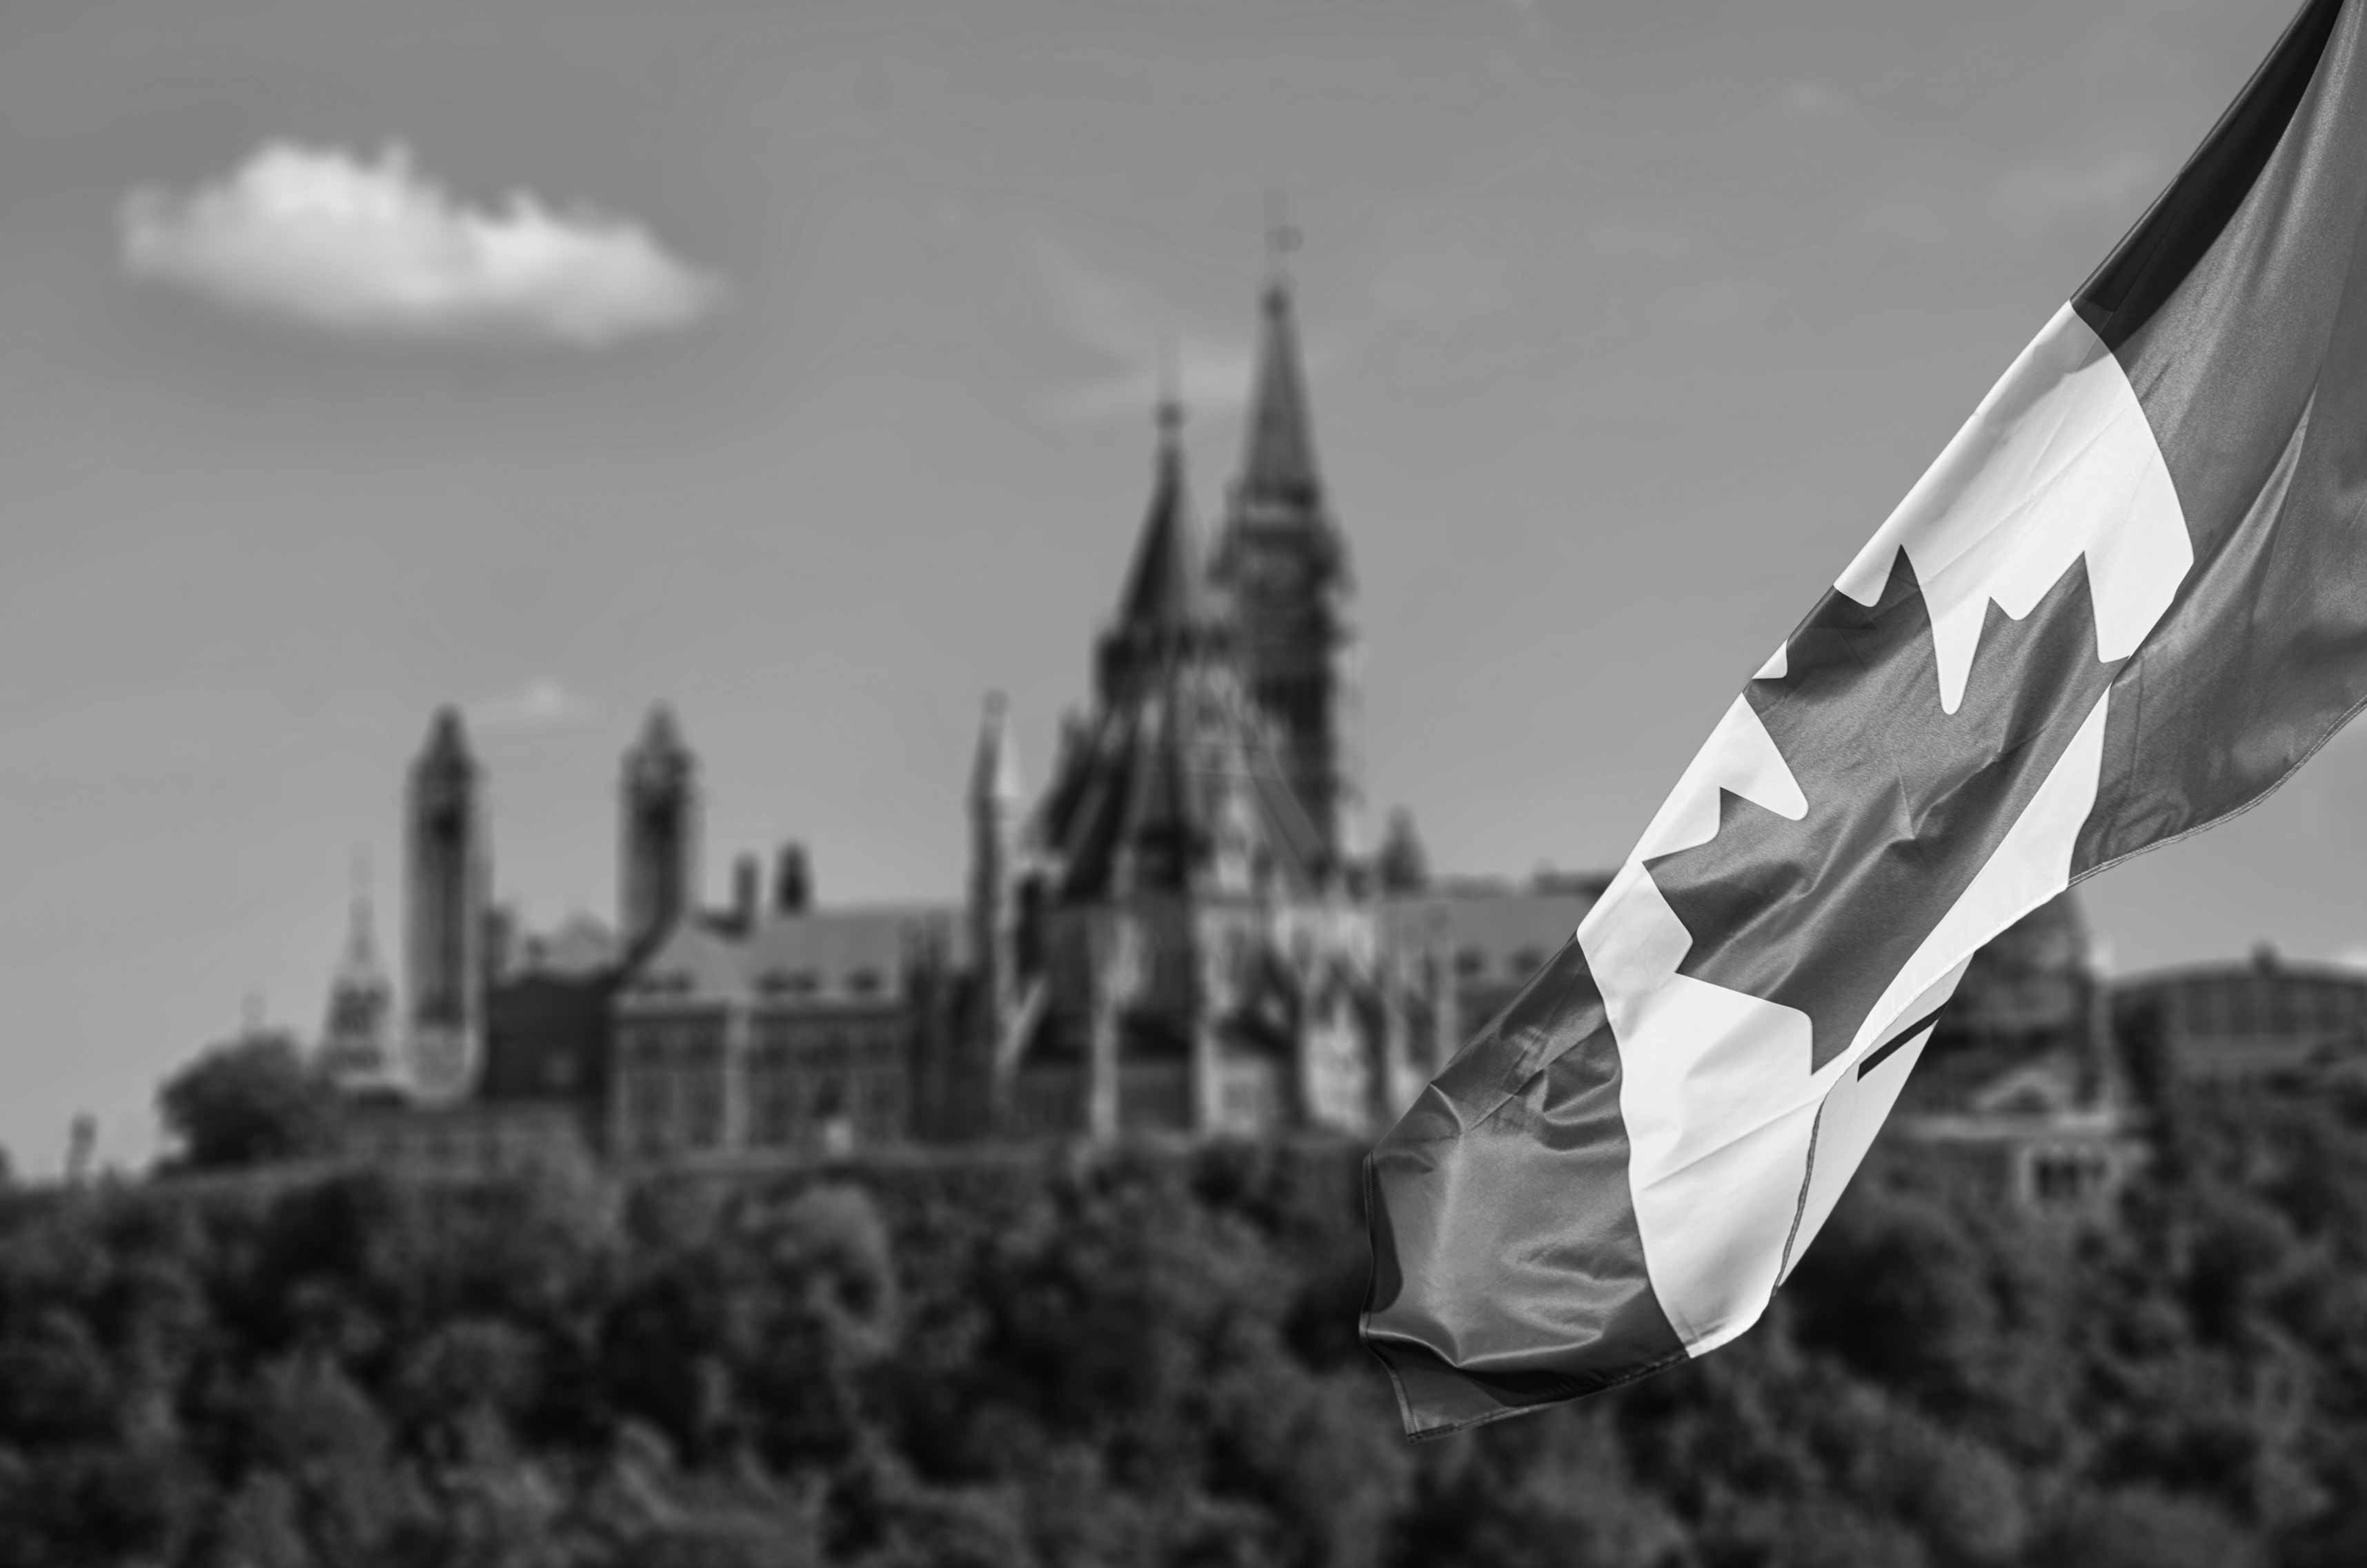 Canadian flag in front of the Canadian Parliament building in Ottawa